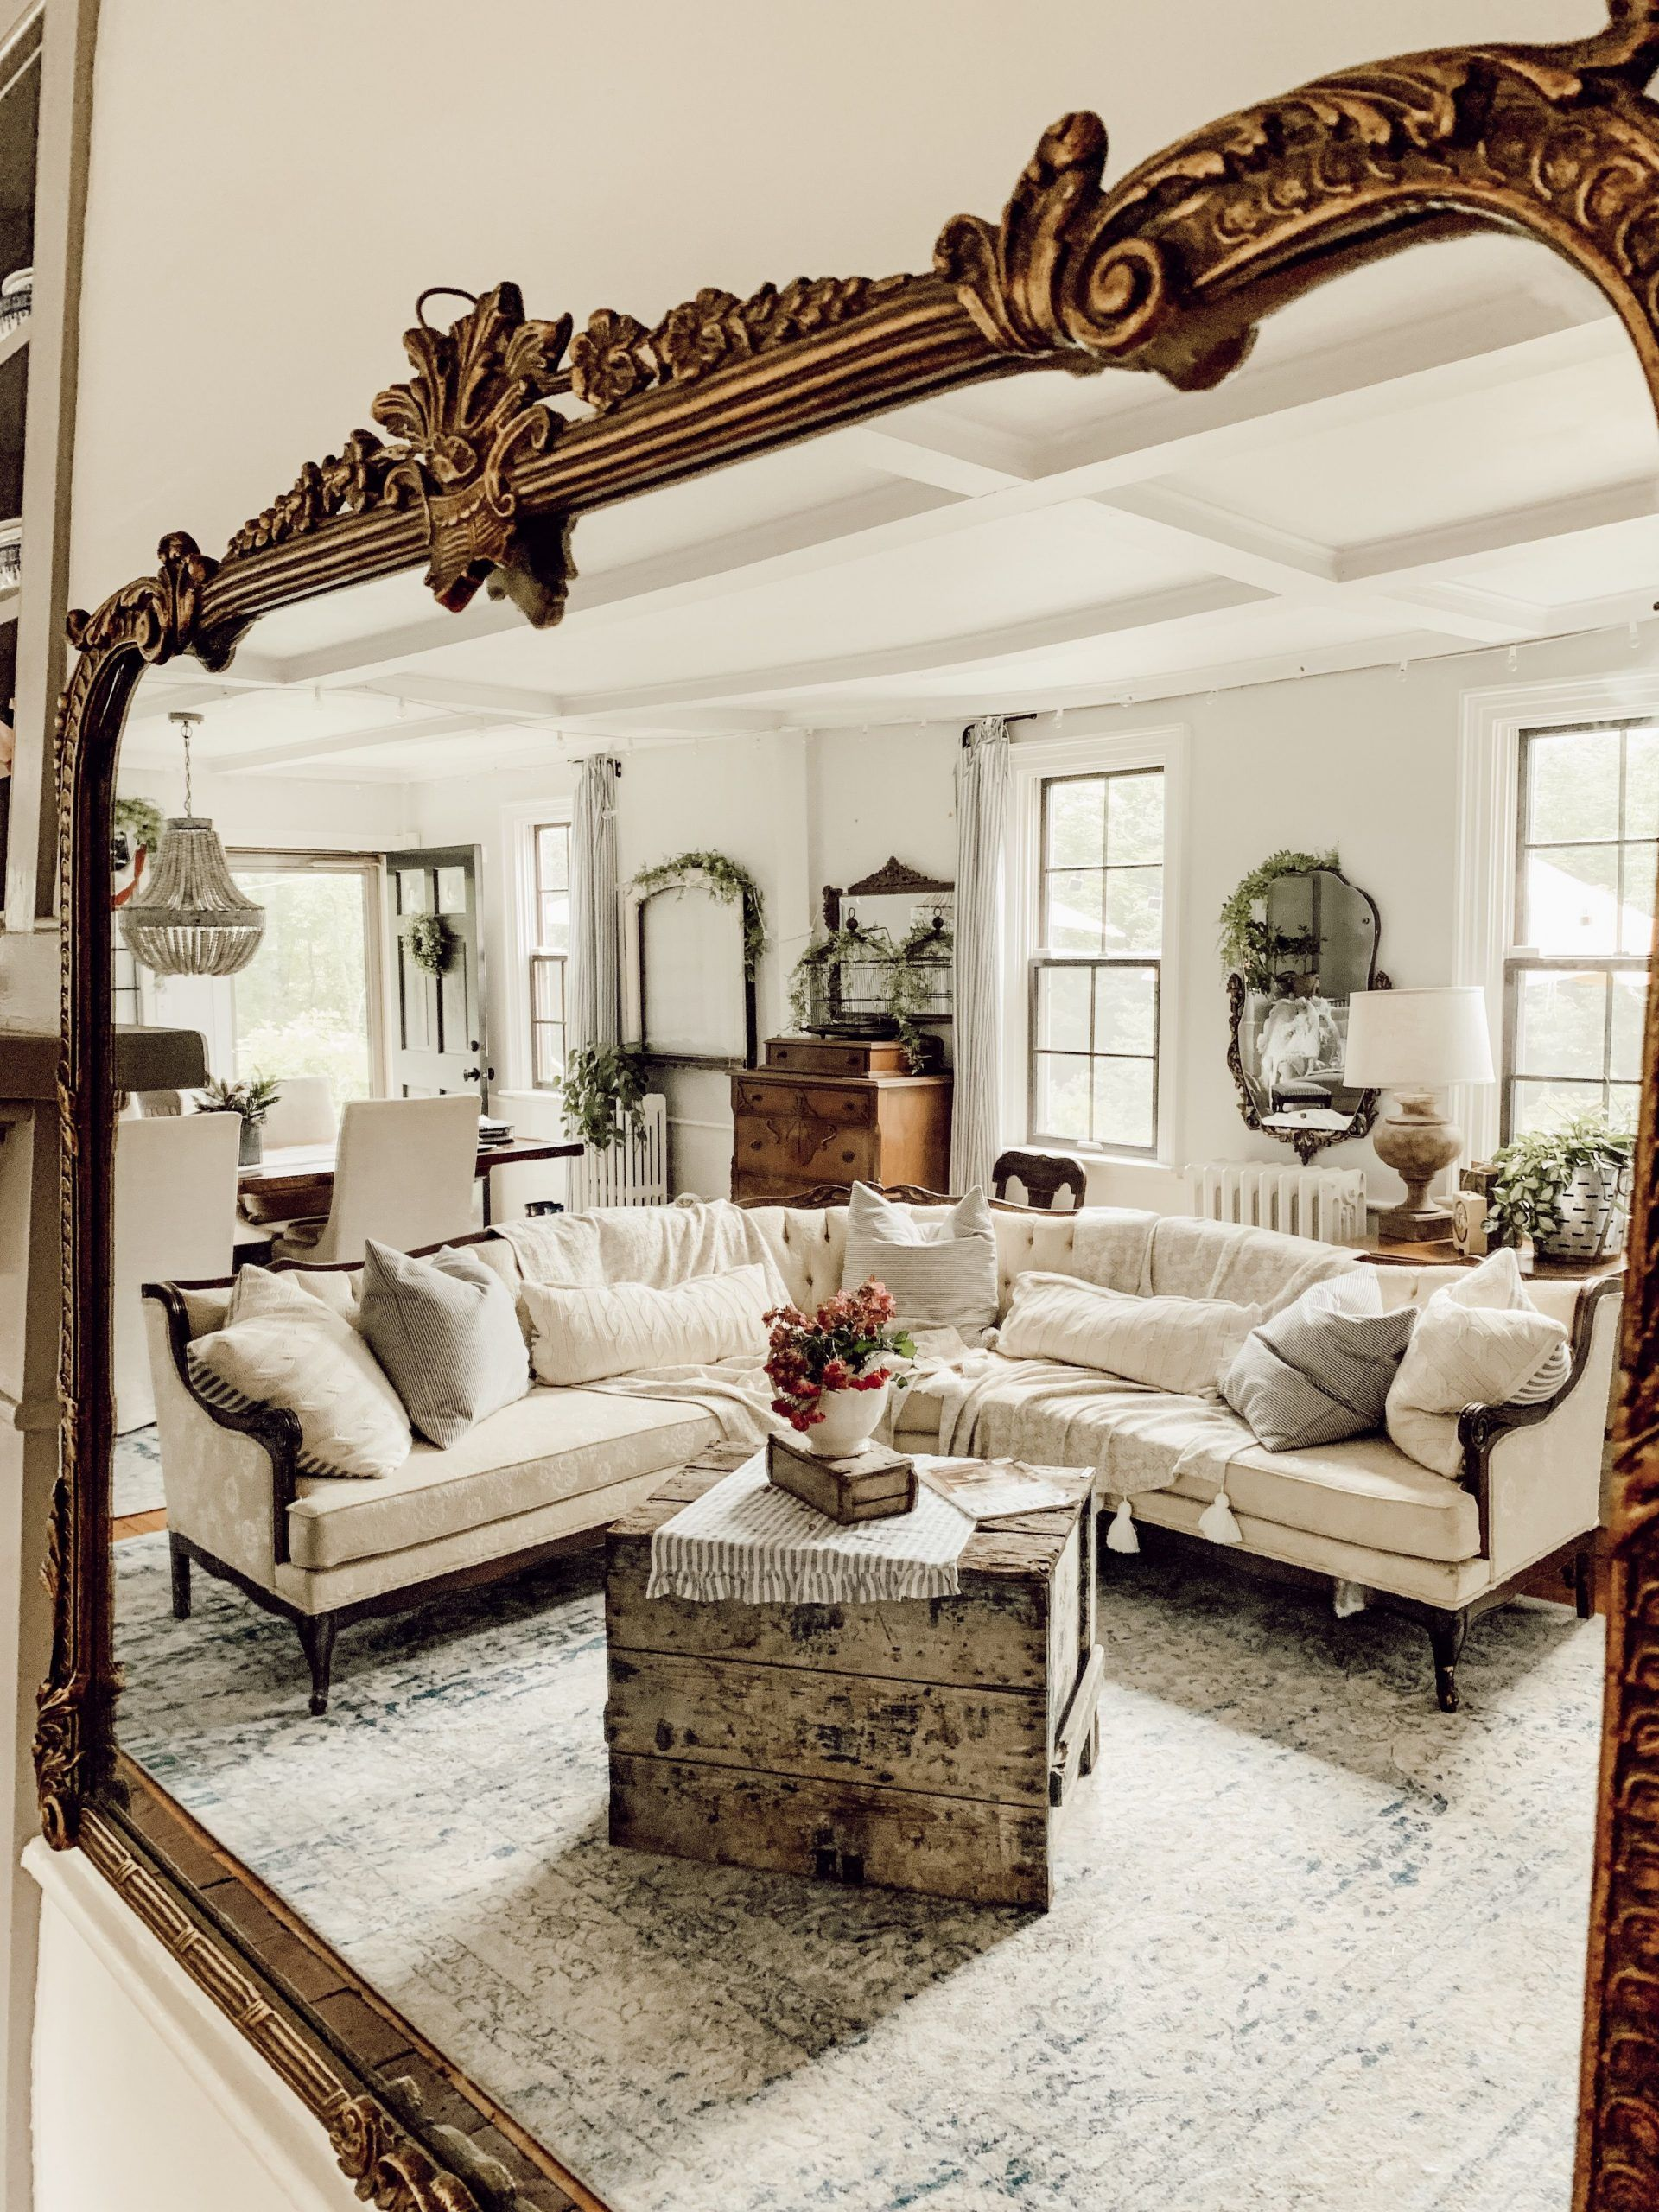 Antique Living Room Decor Rustic Farmhouse Antique Living Room Vintage Mirror In 2020 Farm House Living Room Antique Living Rooms French Country Living Room